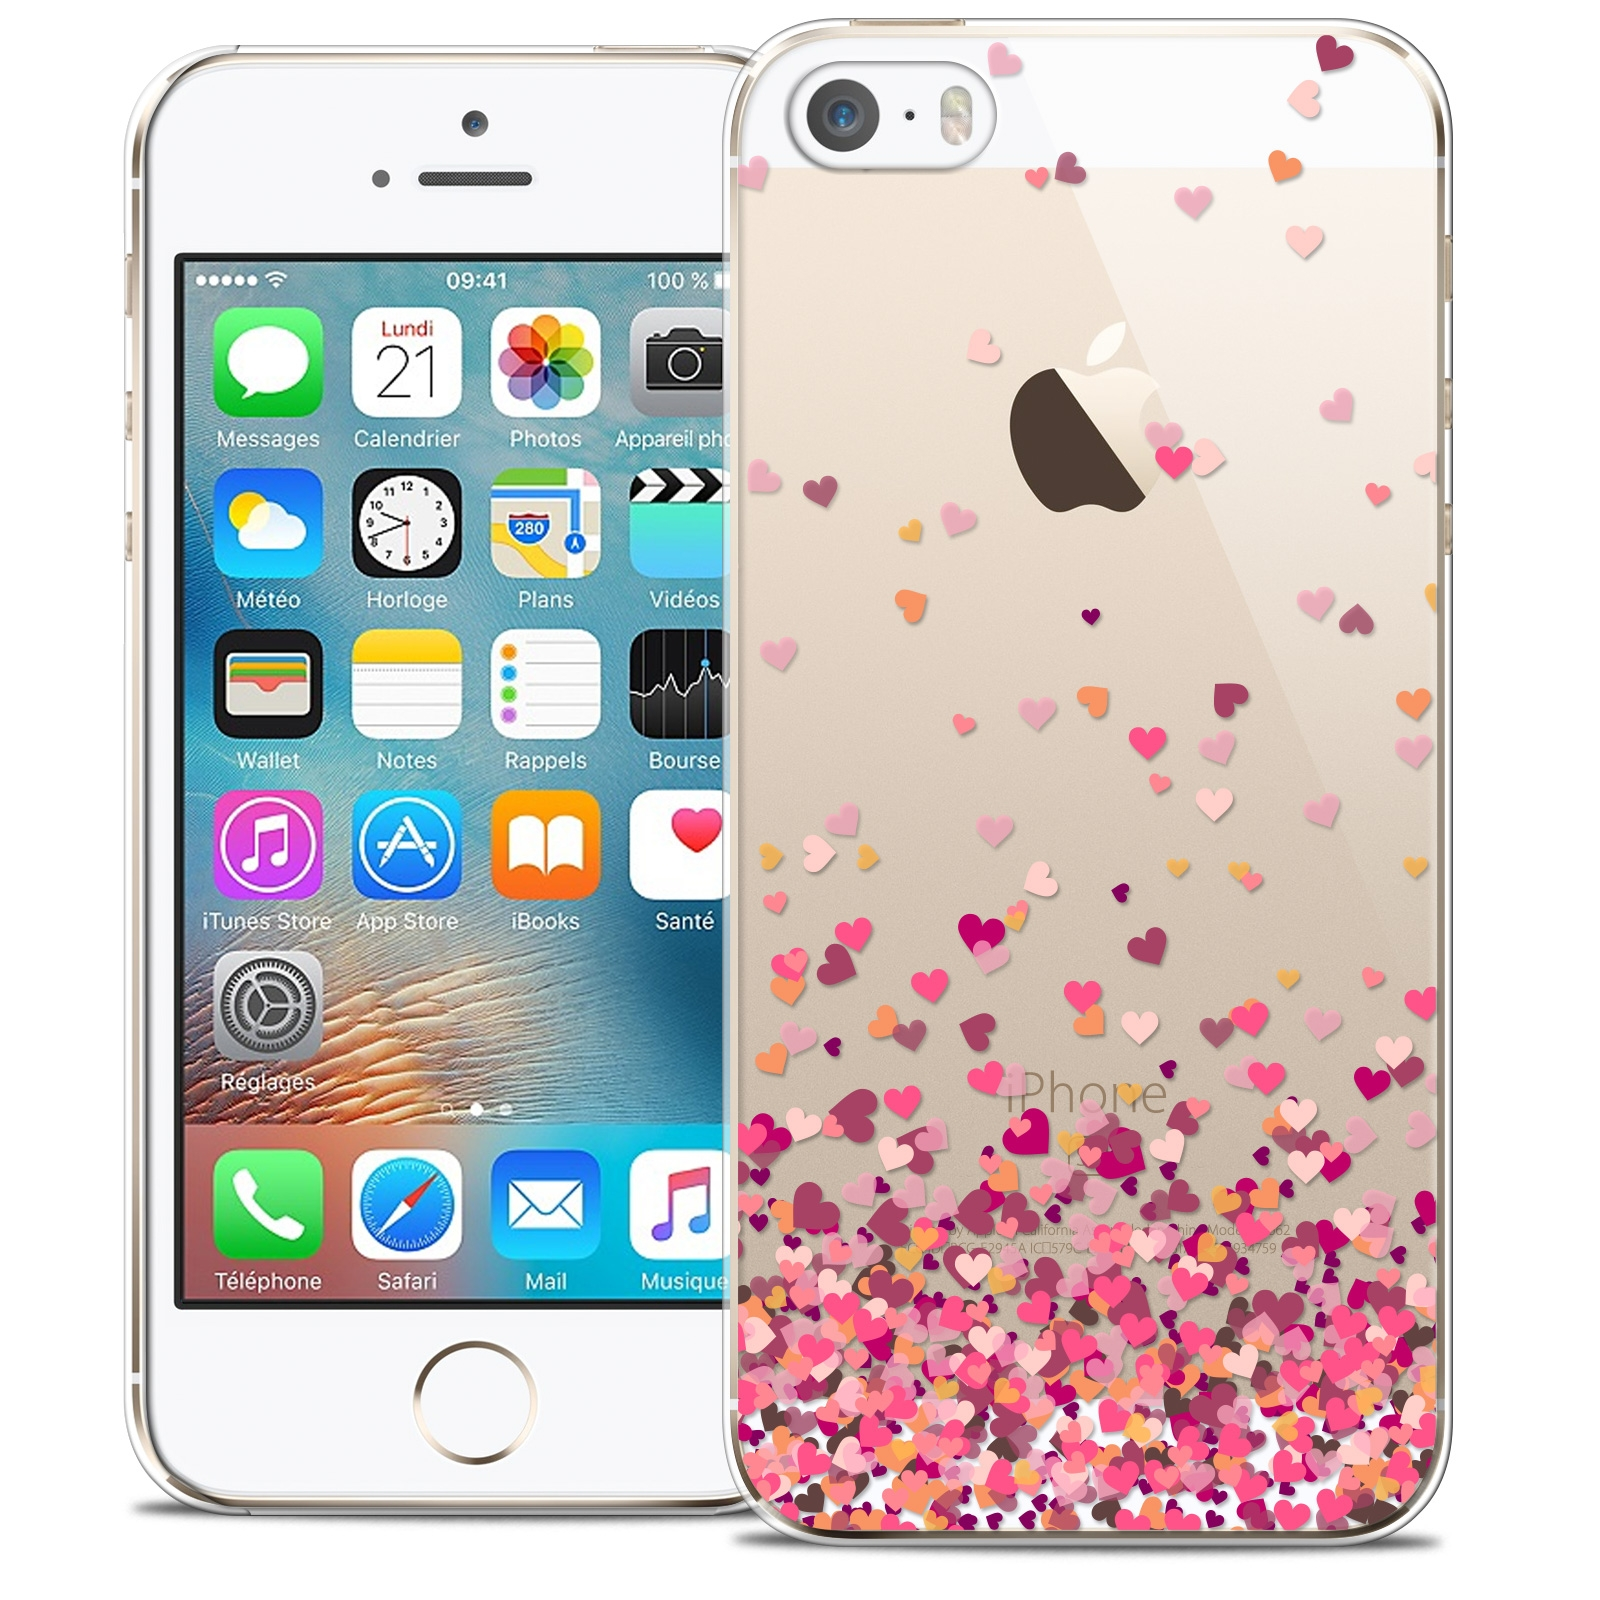 coque crystal iphone 5 5s se extra fine sweetie heart flakes